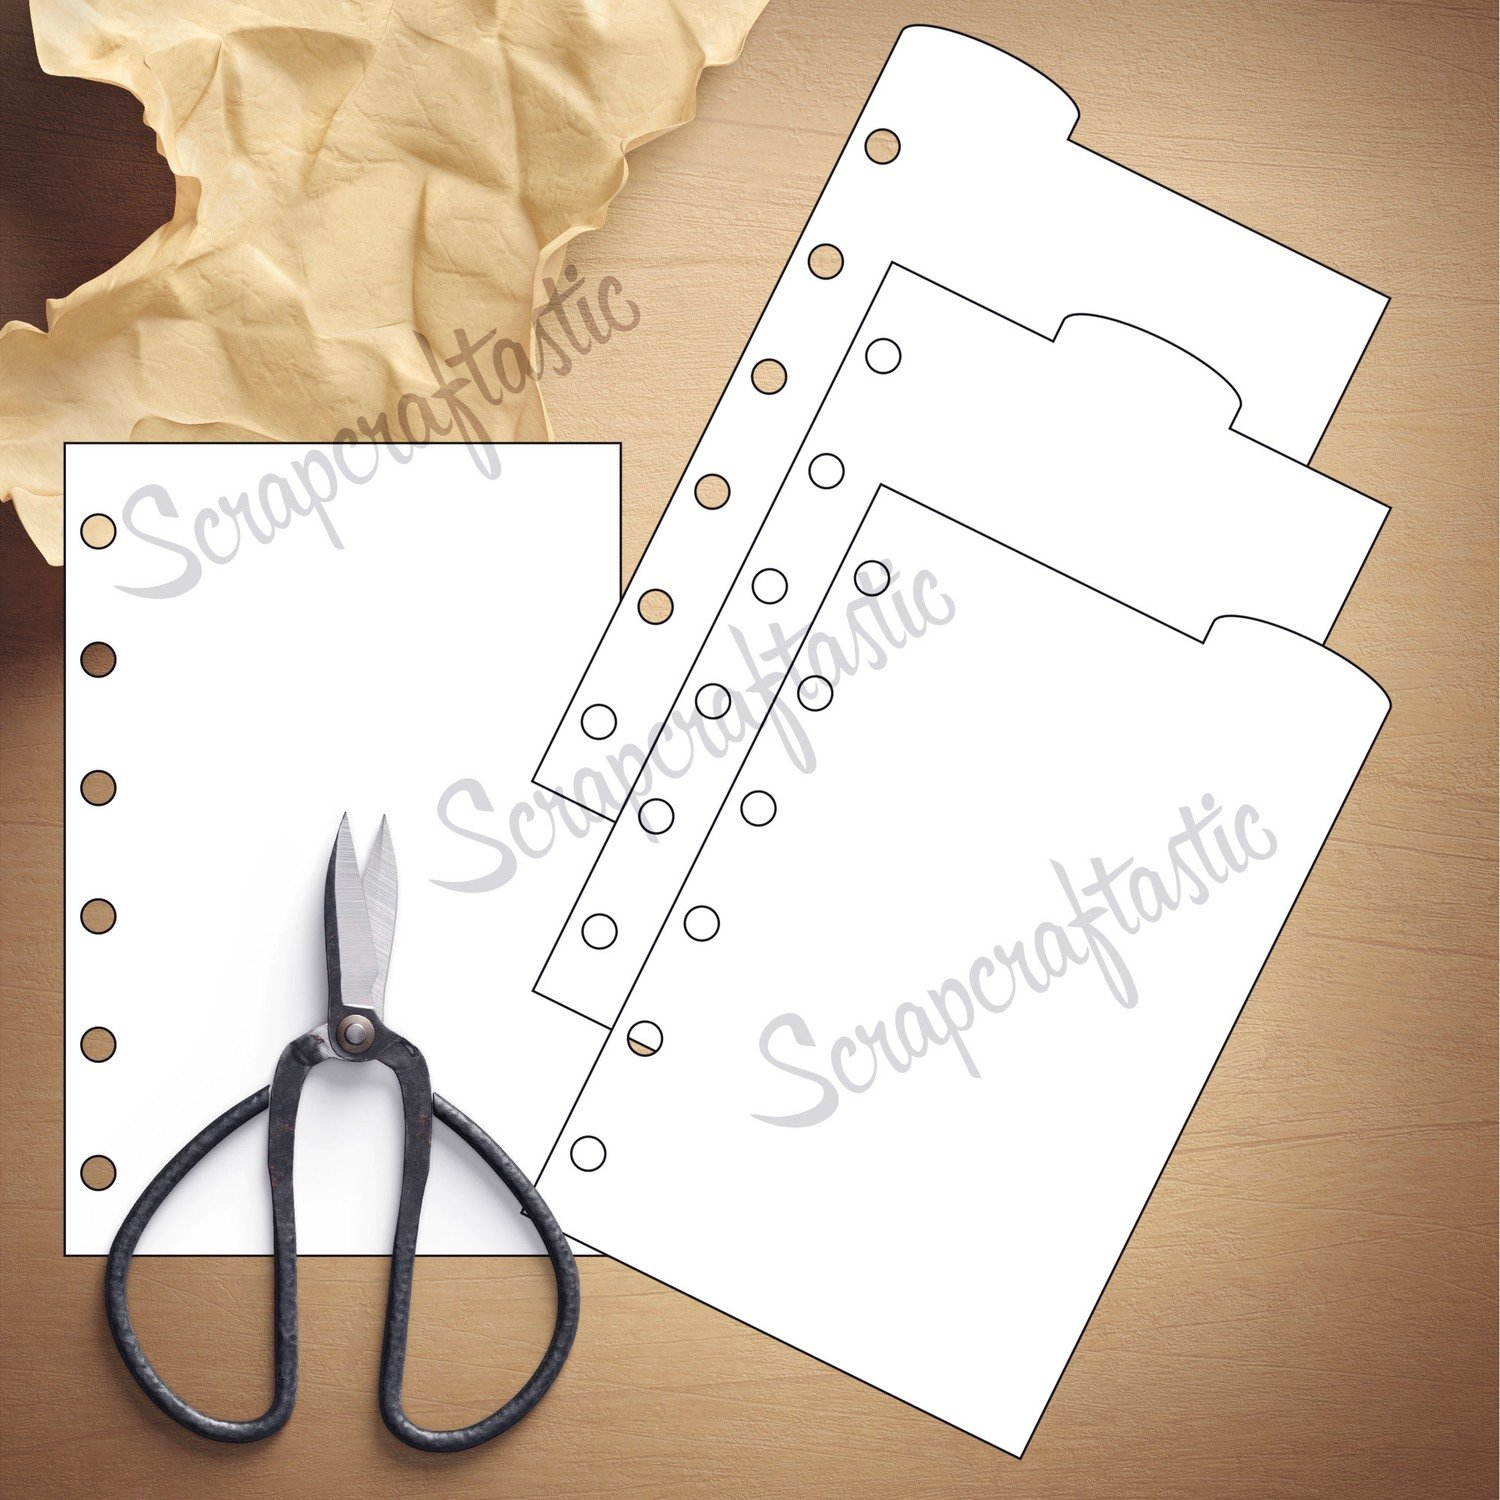 POCKET RINGS - 3 Rounded Top Tab Divider Printable Templates and Cut Files